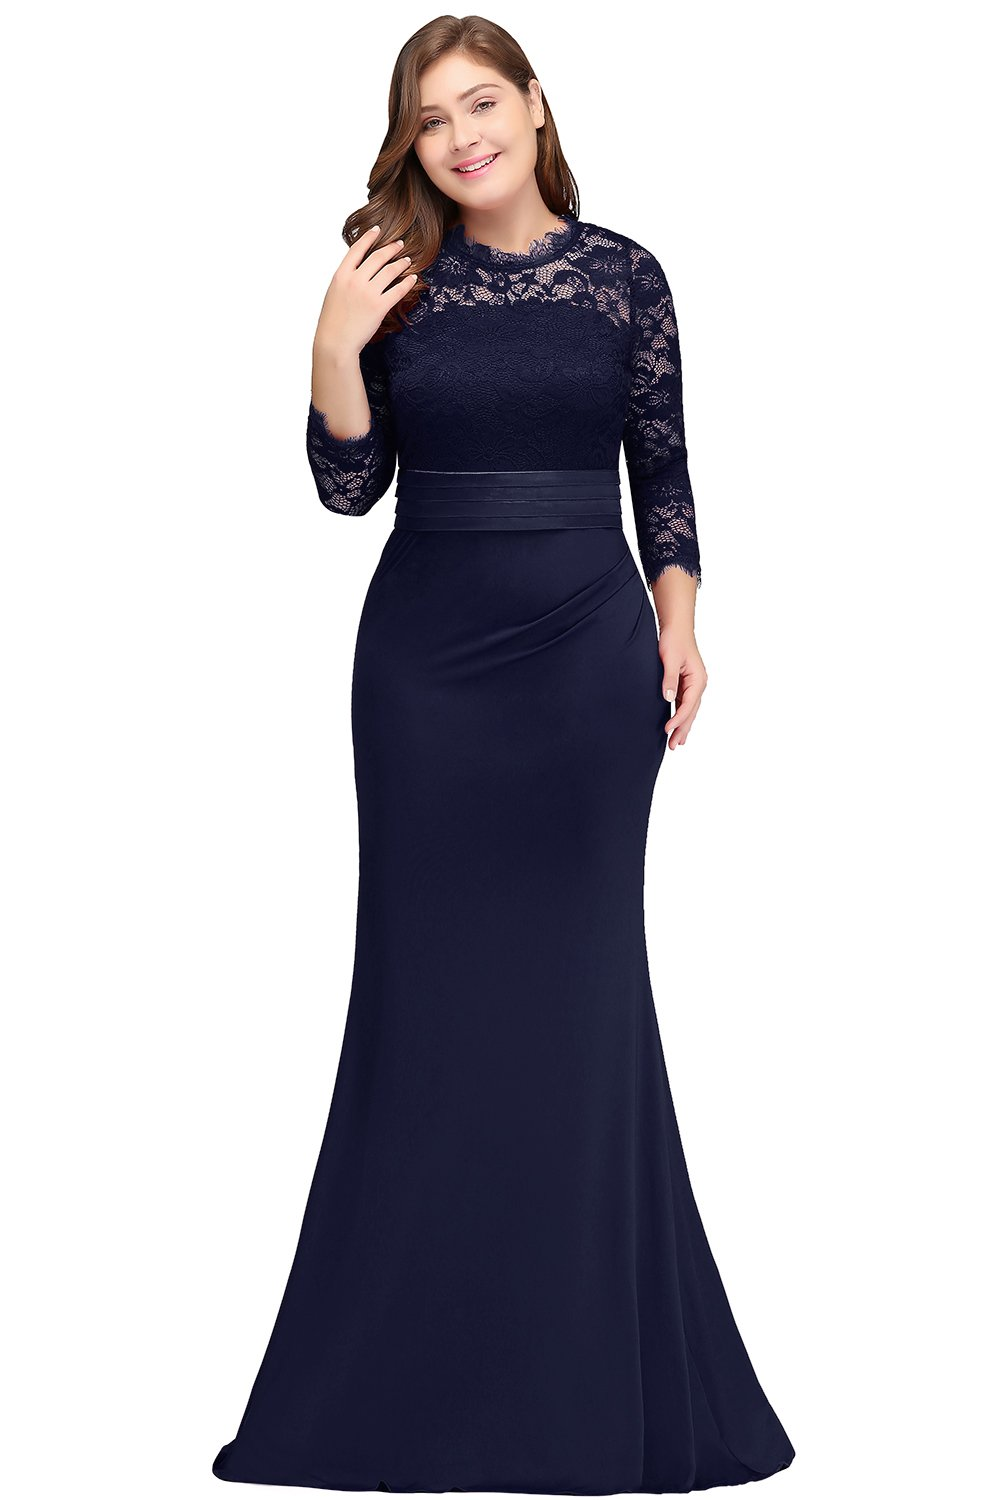 Women Plus Size Formal Evening Dress With Sleeve Navy Blue 14w